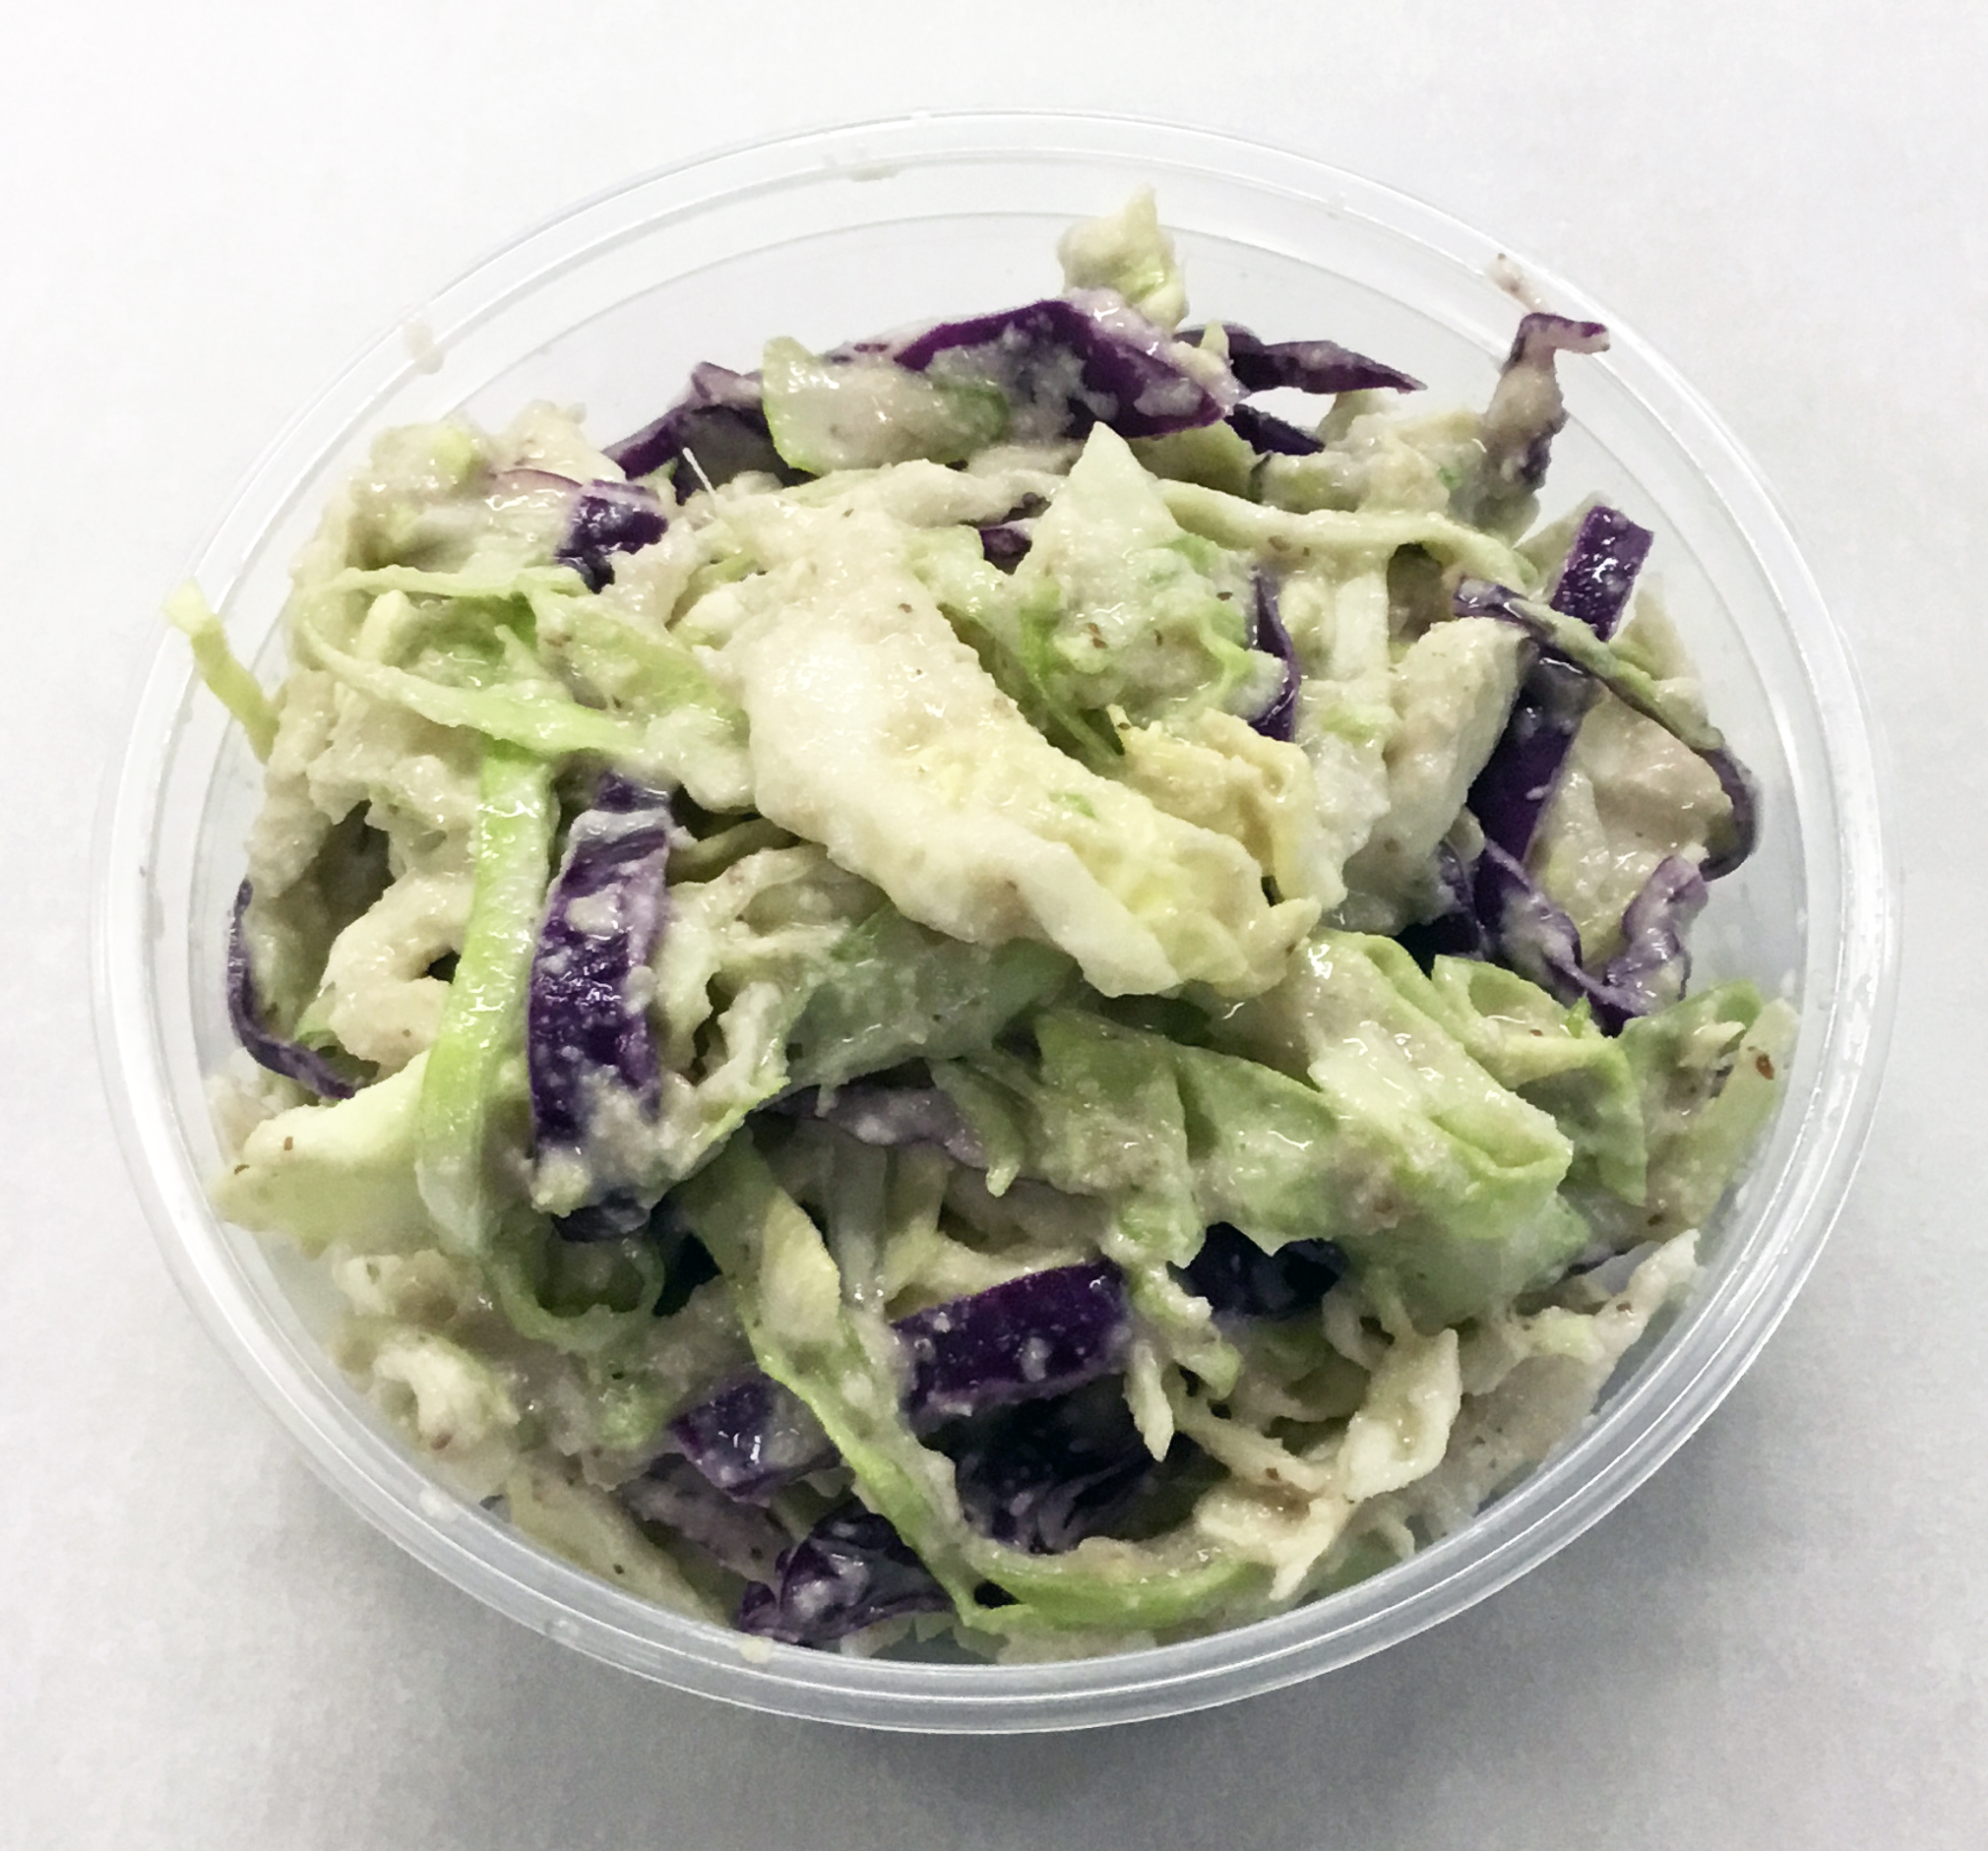 Coleslaw of green and red cabbage with a sunflower seed, stone ground mustard, brown rice vinegar and brown rice syrup dressing.